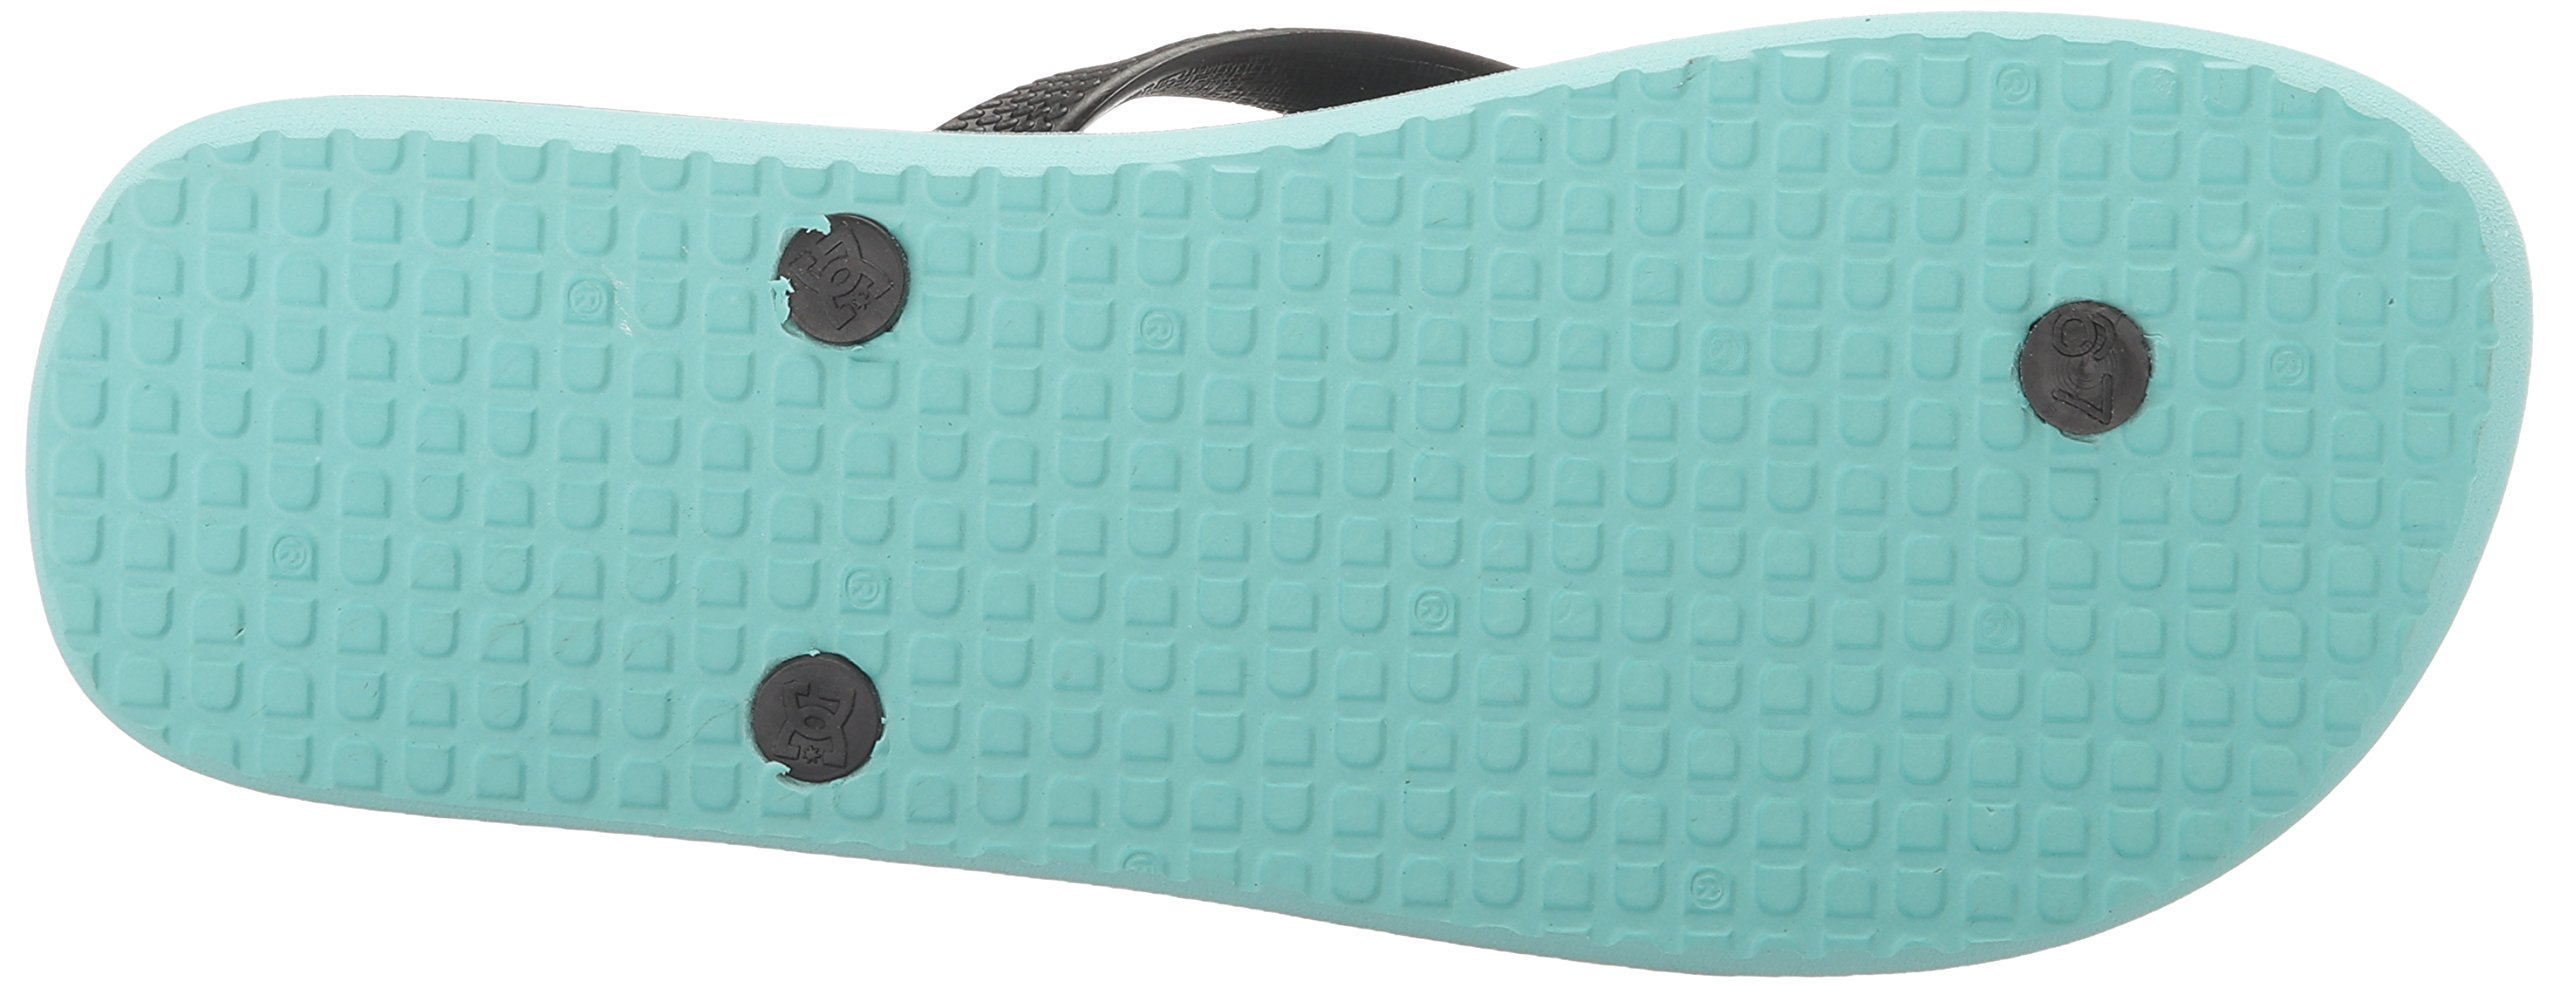 DC Girls' Spray Flip Flop, Turquoise, 6 M US Little Kid by DC (Image #3)